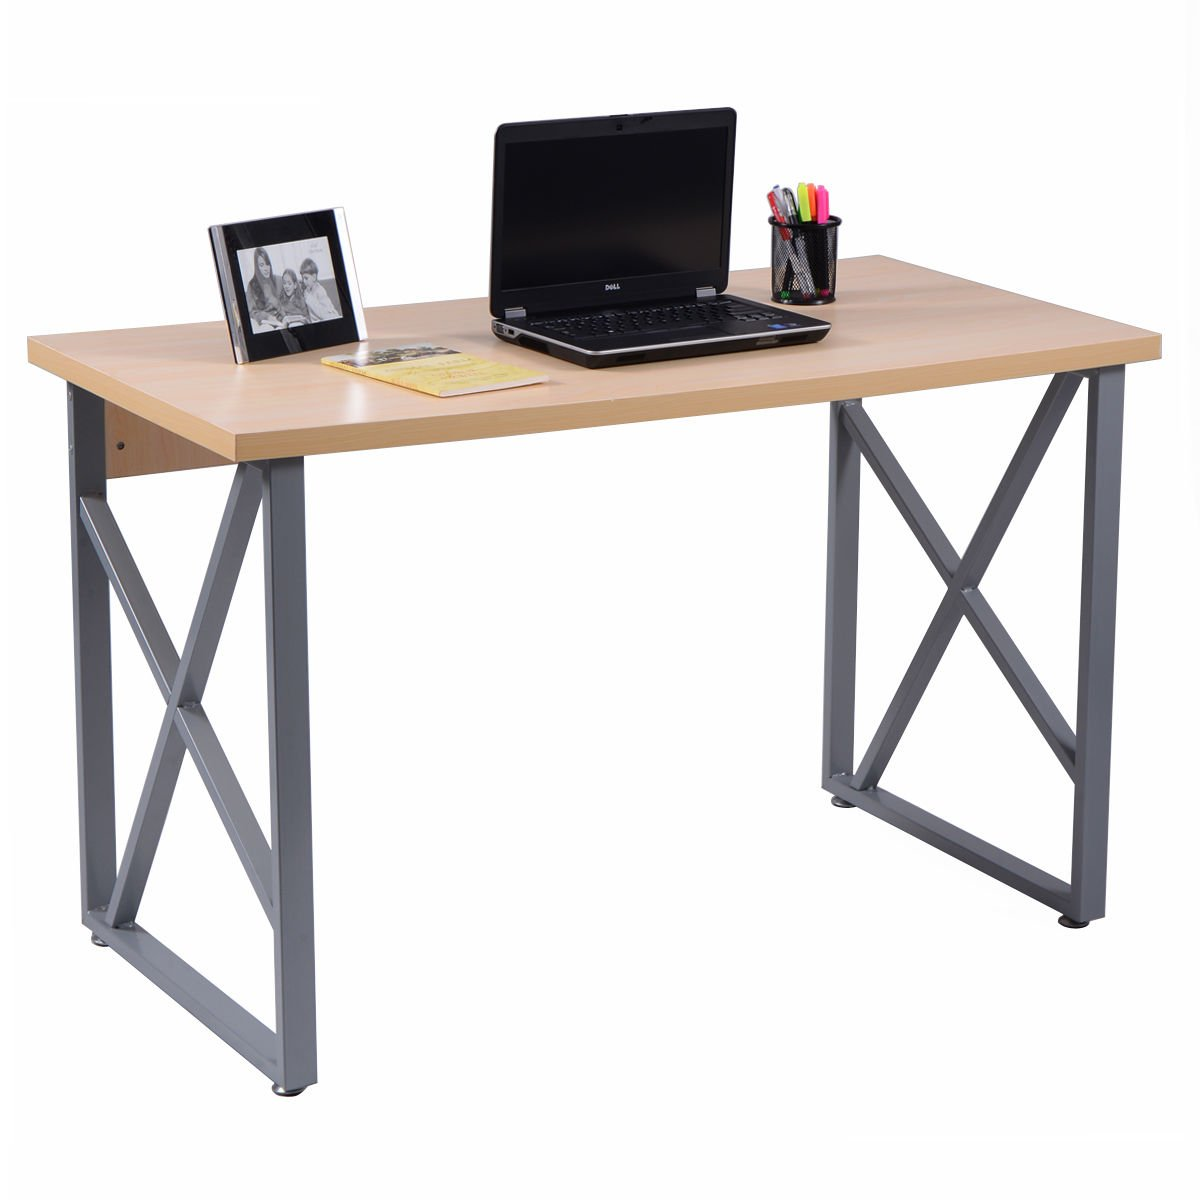 onestops8 Computer Desk PC Laptop Table Writing Study Workstation Home Office Furniture